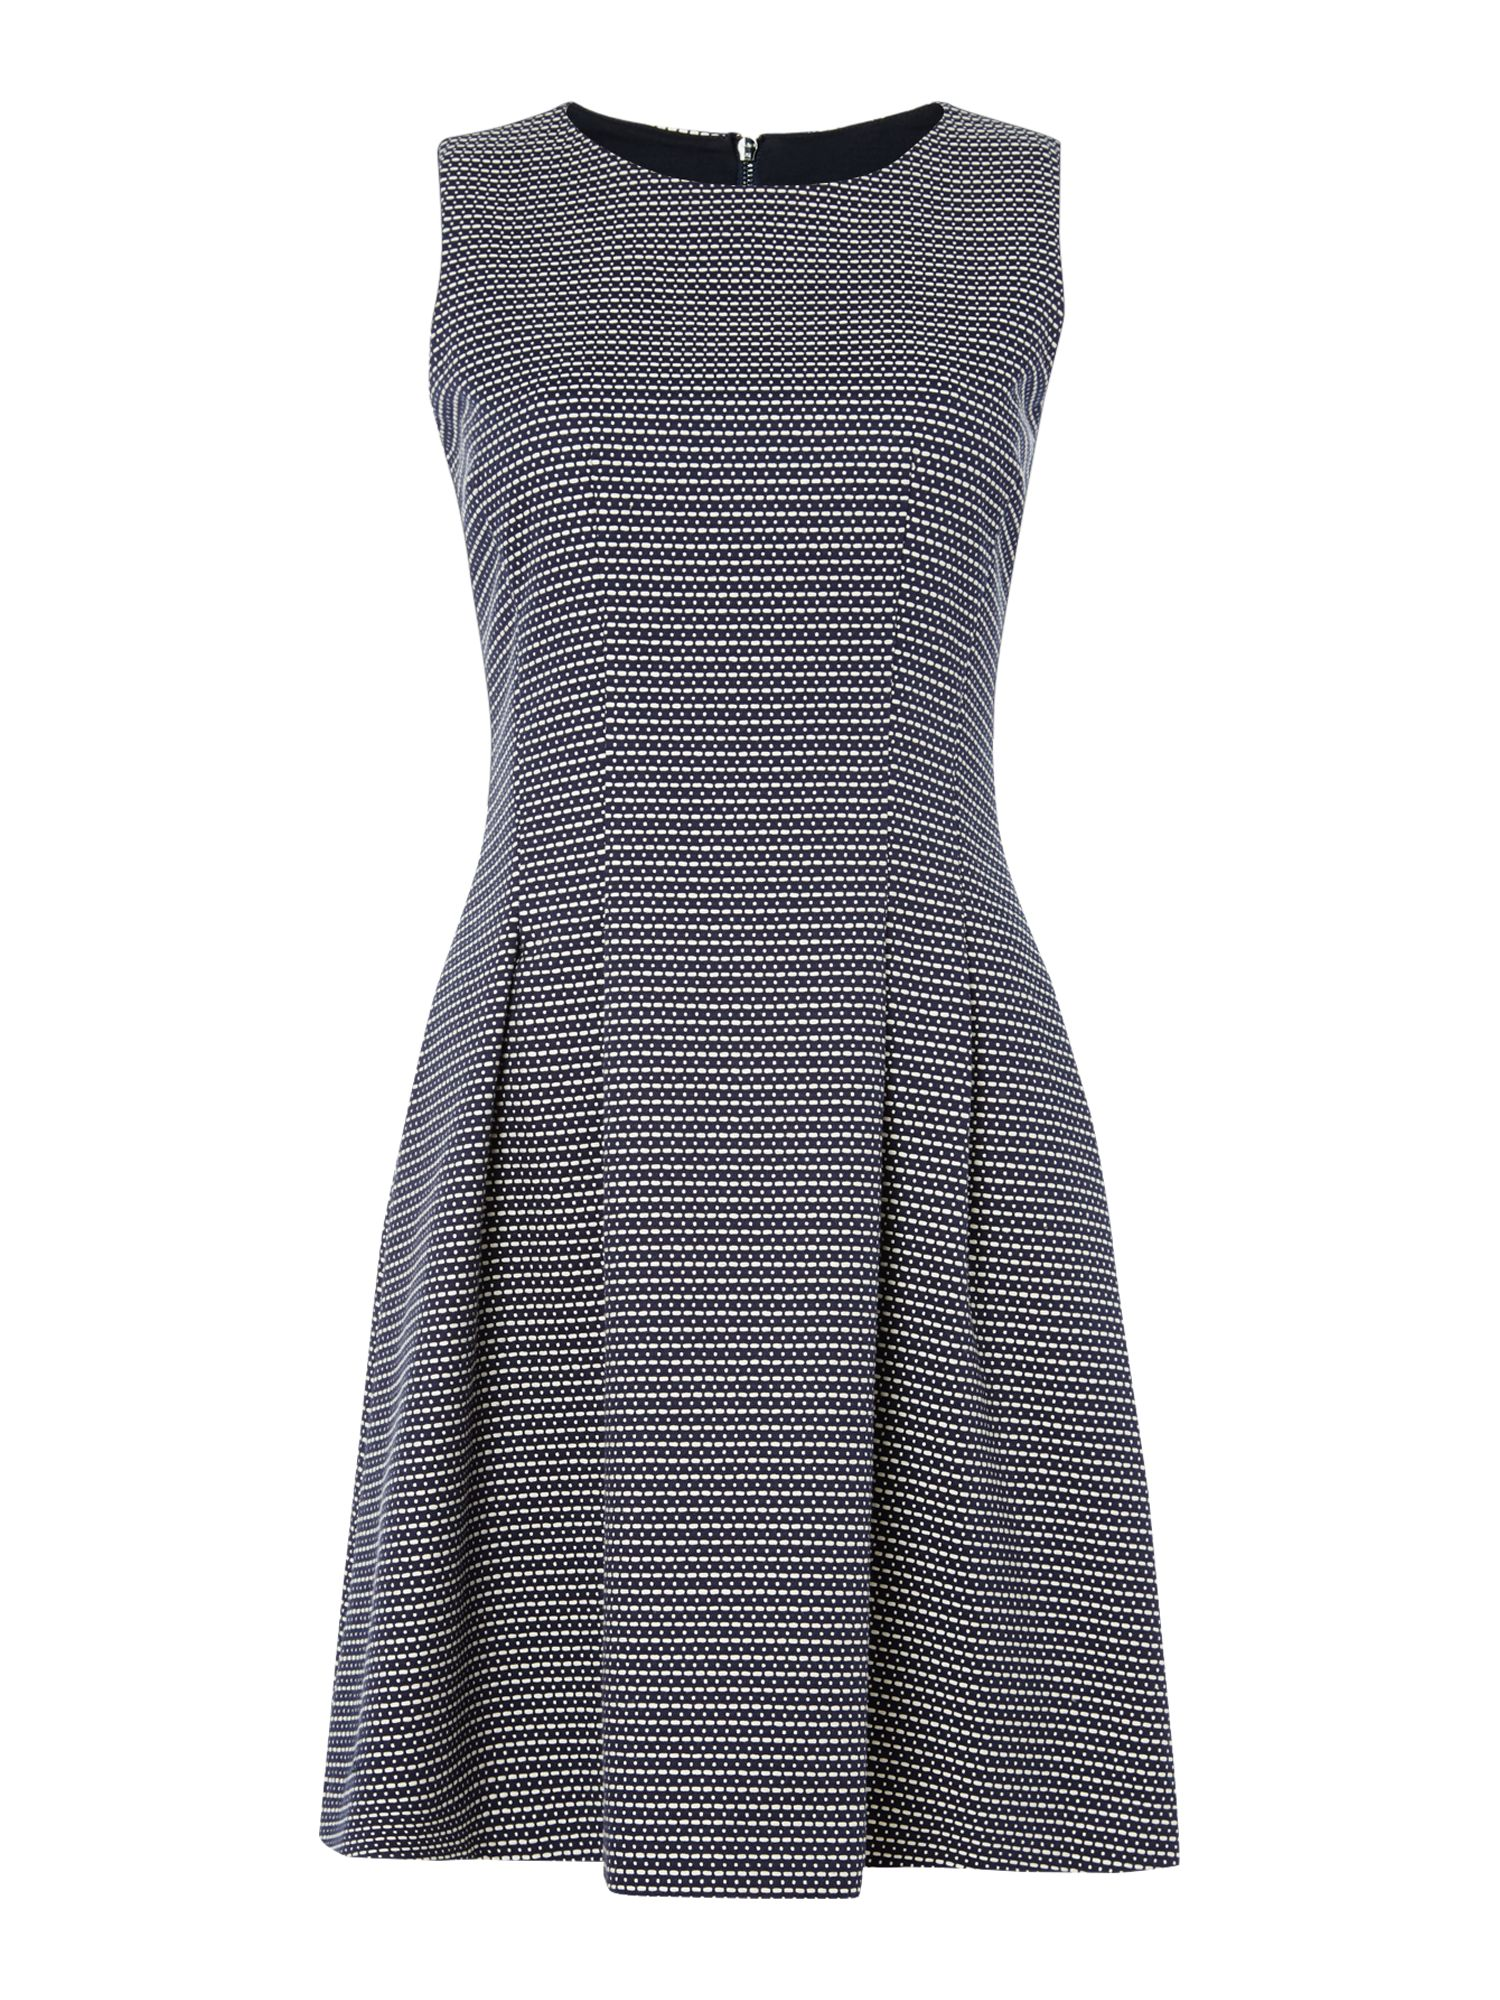 Armani Jeans Sleeveless dobby pattern dress in fantasia blu, Grey